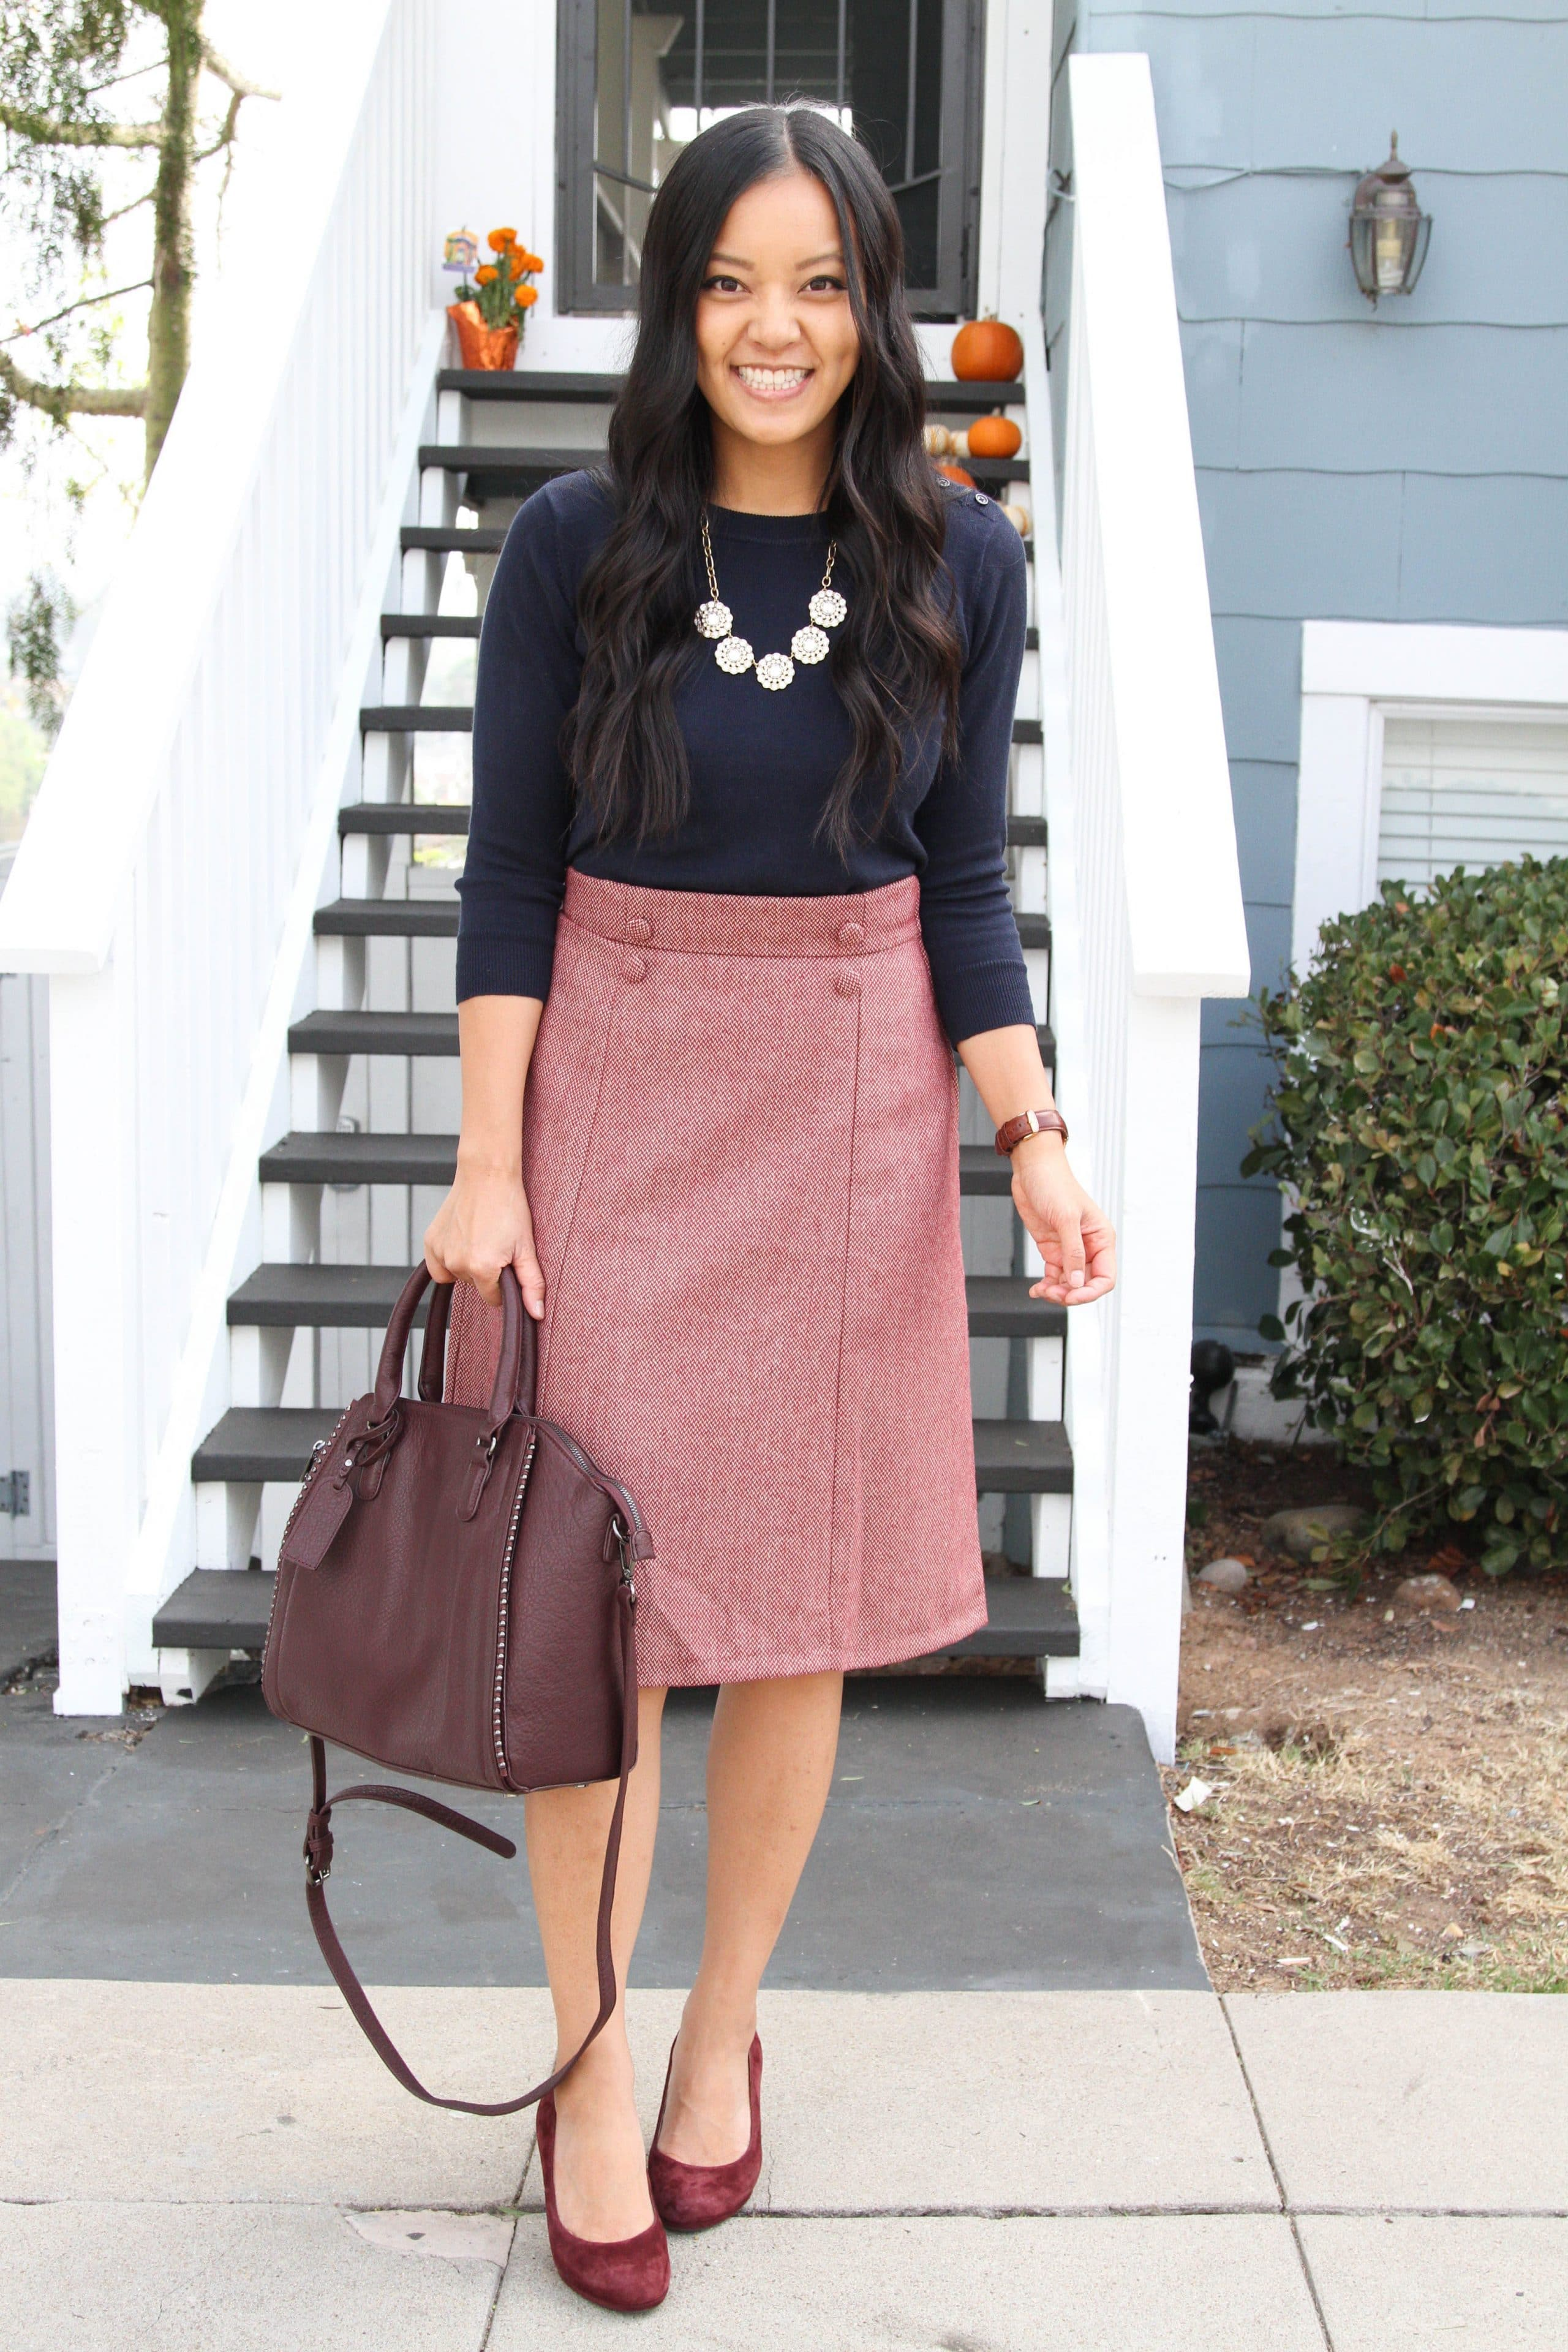 Navy Sweater + Statement Necklace + Maroon Skirt + Heels